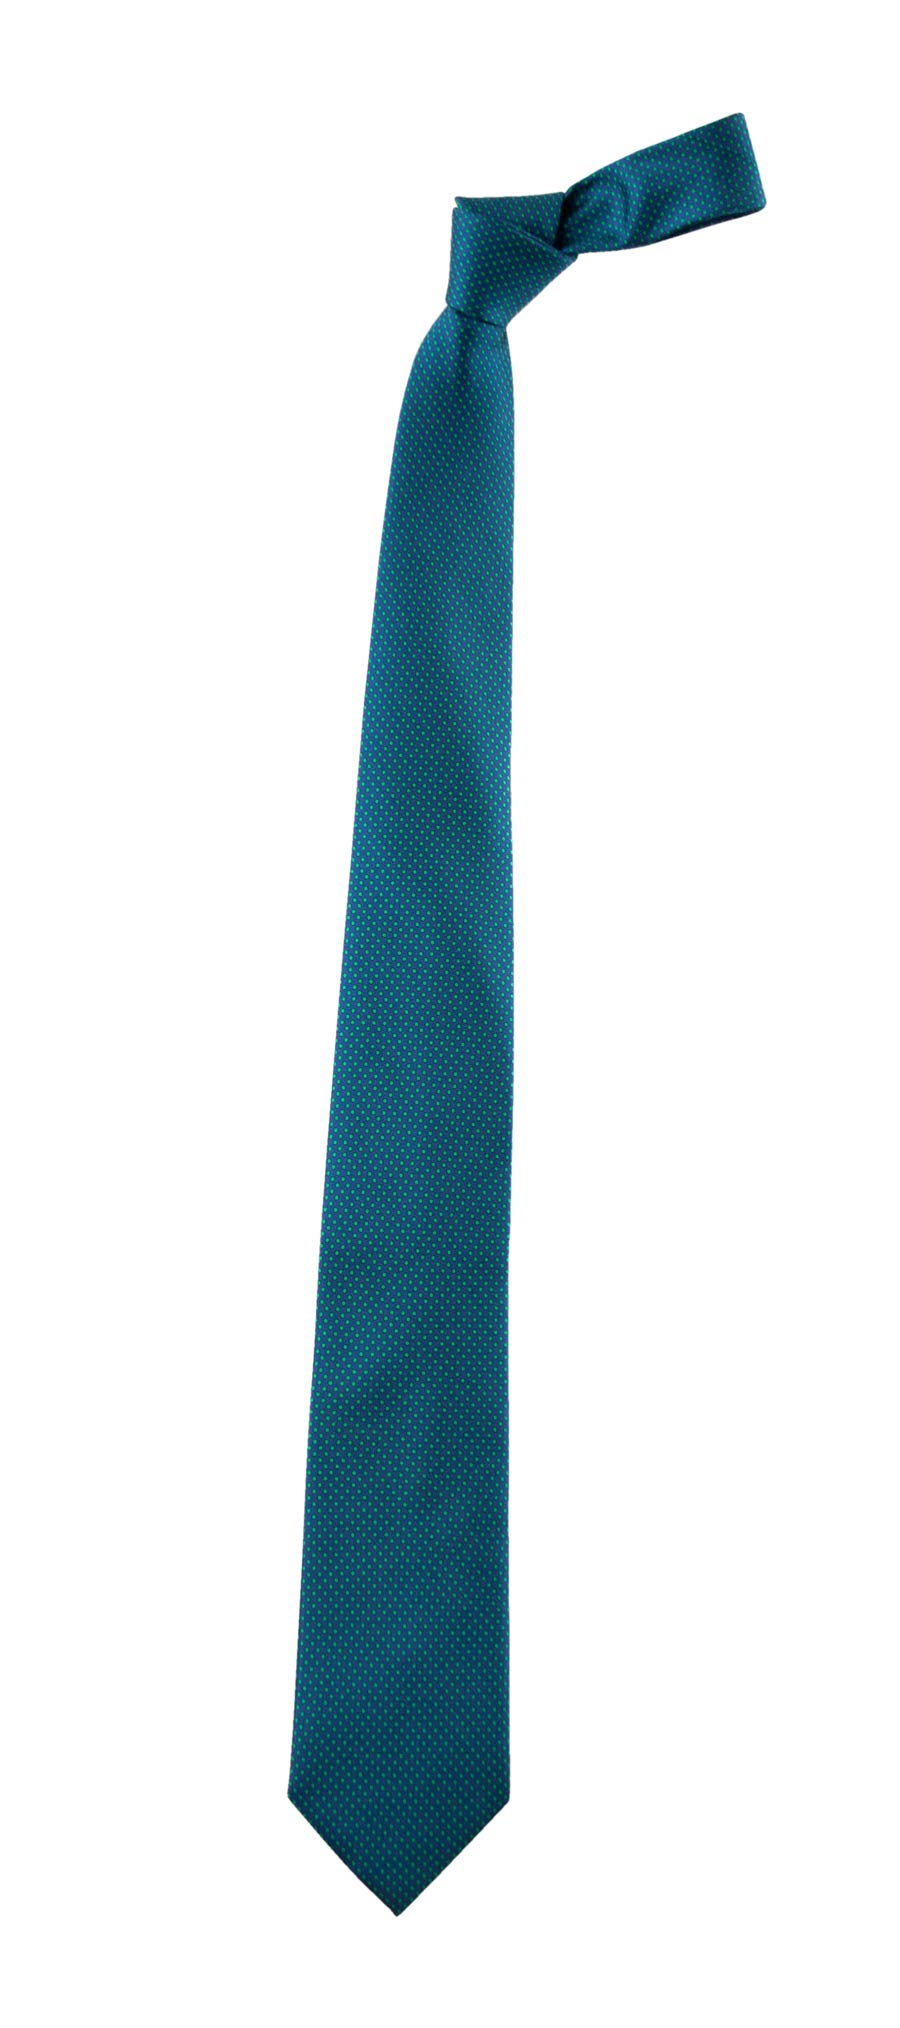 Blue ceremony tie with green polka dots